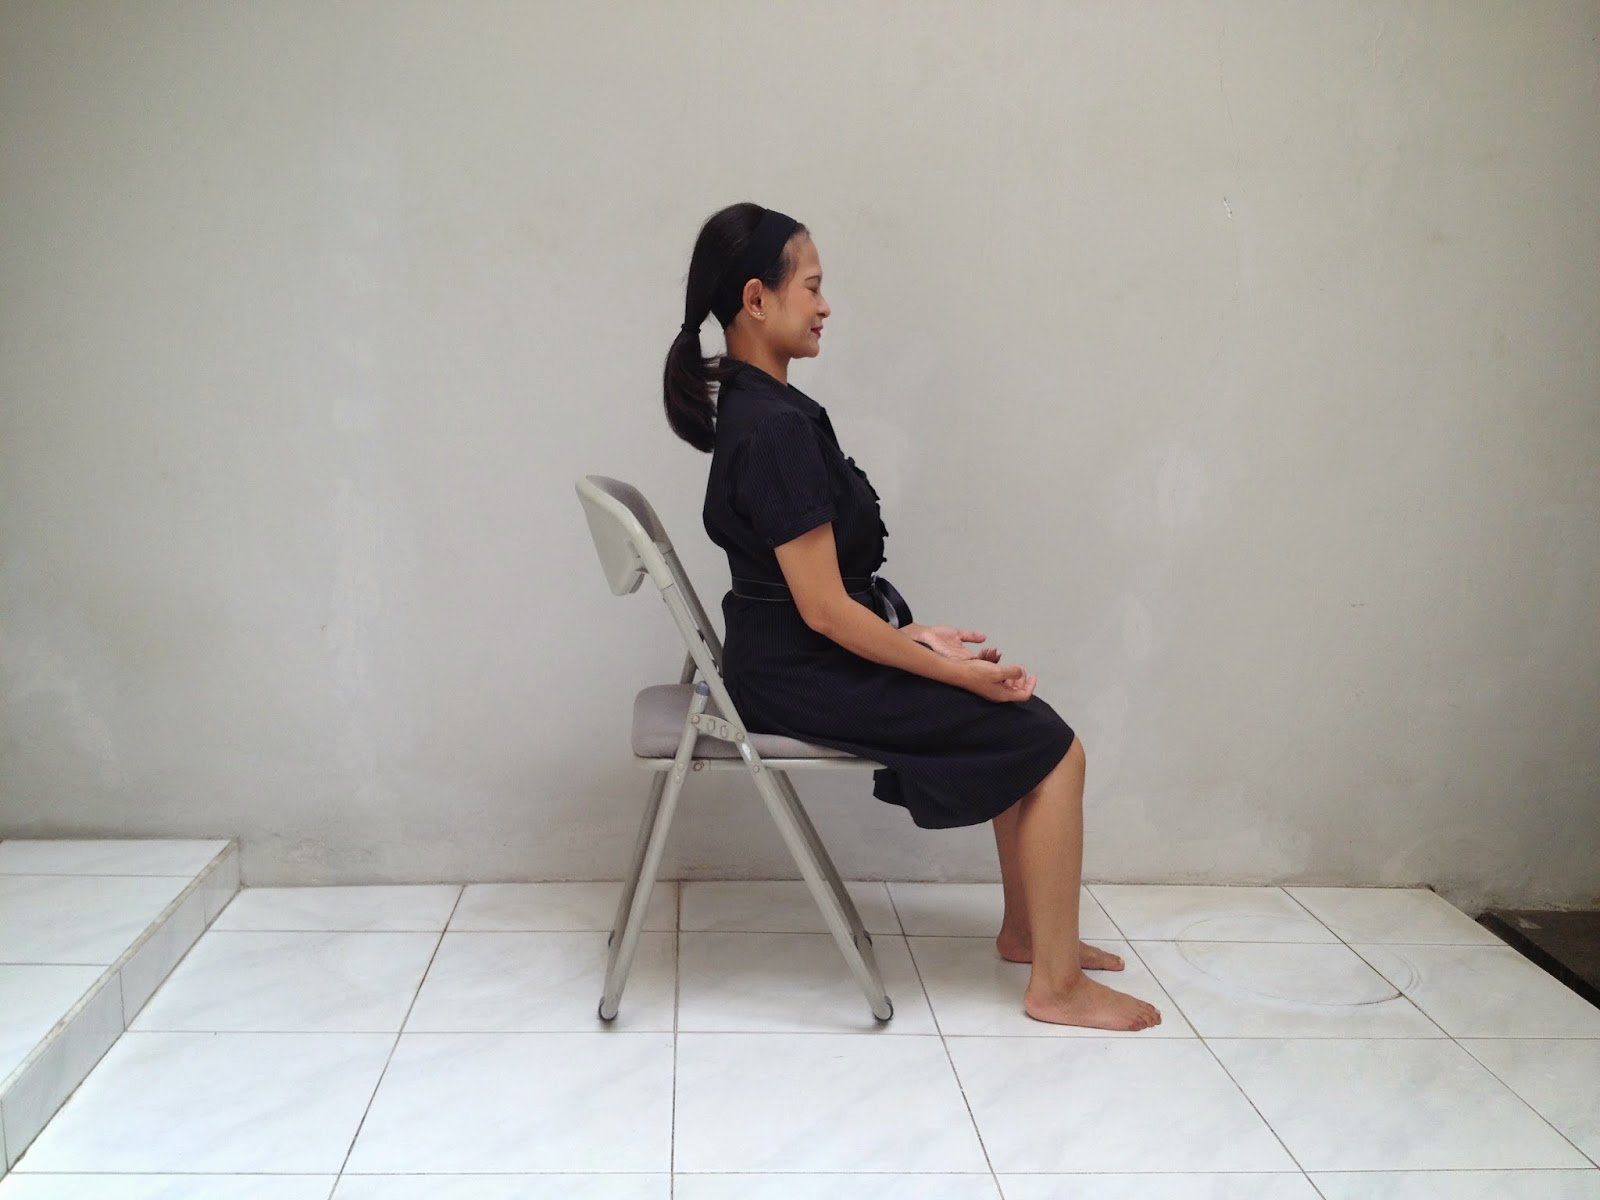 ez posture chair la z boy astrid amalia a simple guide to doing yoga at the office